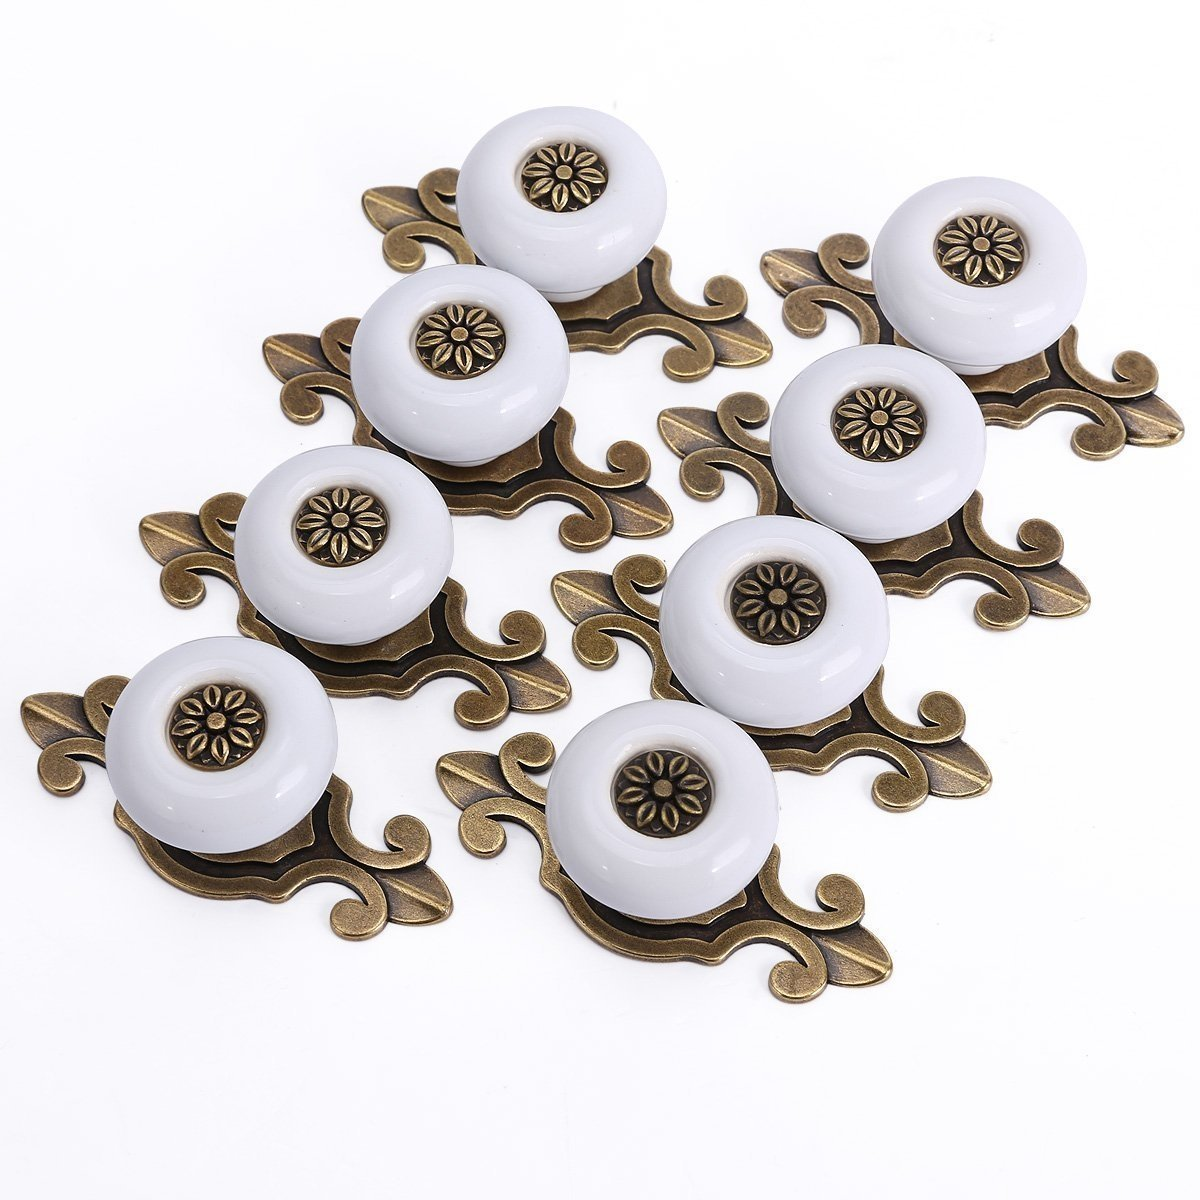 Dresser Knobs, TopRay Drawer Knobs Cabinet Knobs Ceramic Knobs Cupboard Knobs Door Knobs Door Handle Pulls with 8PCS 25MM Screws (Bronze Plate)